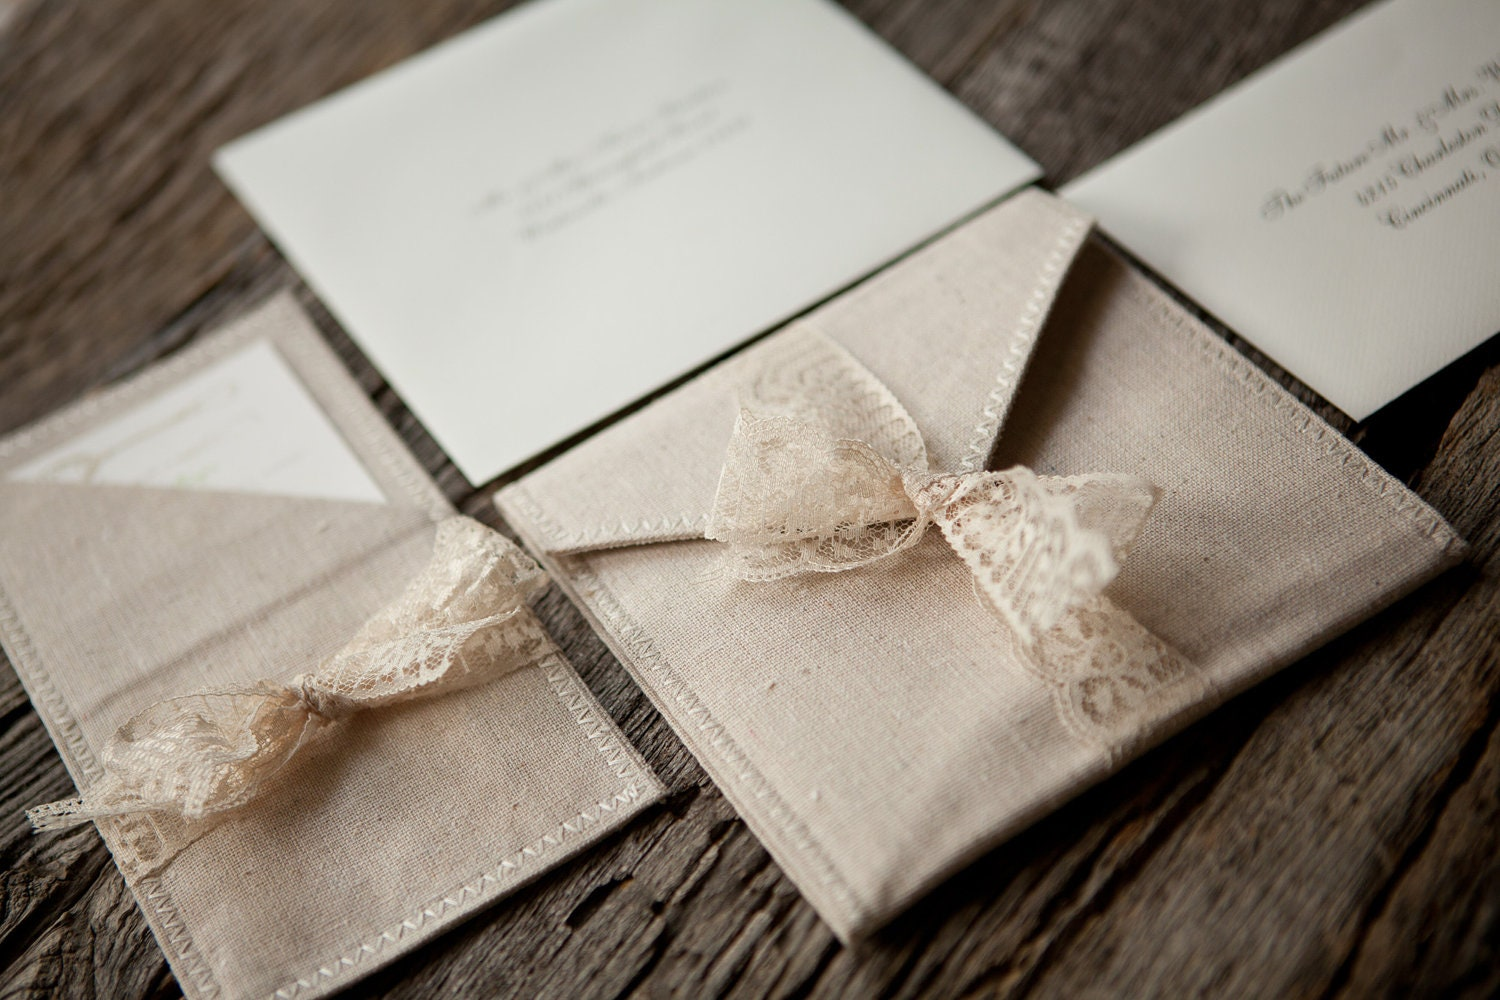 Fold Wedding Invitations: Linen And Lace Pocket Fold Wedding Invitations By Blueenvelope